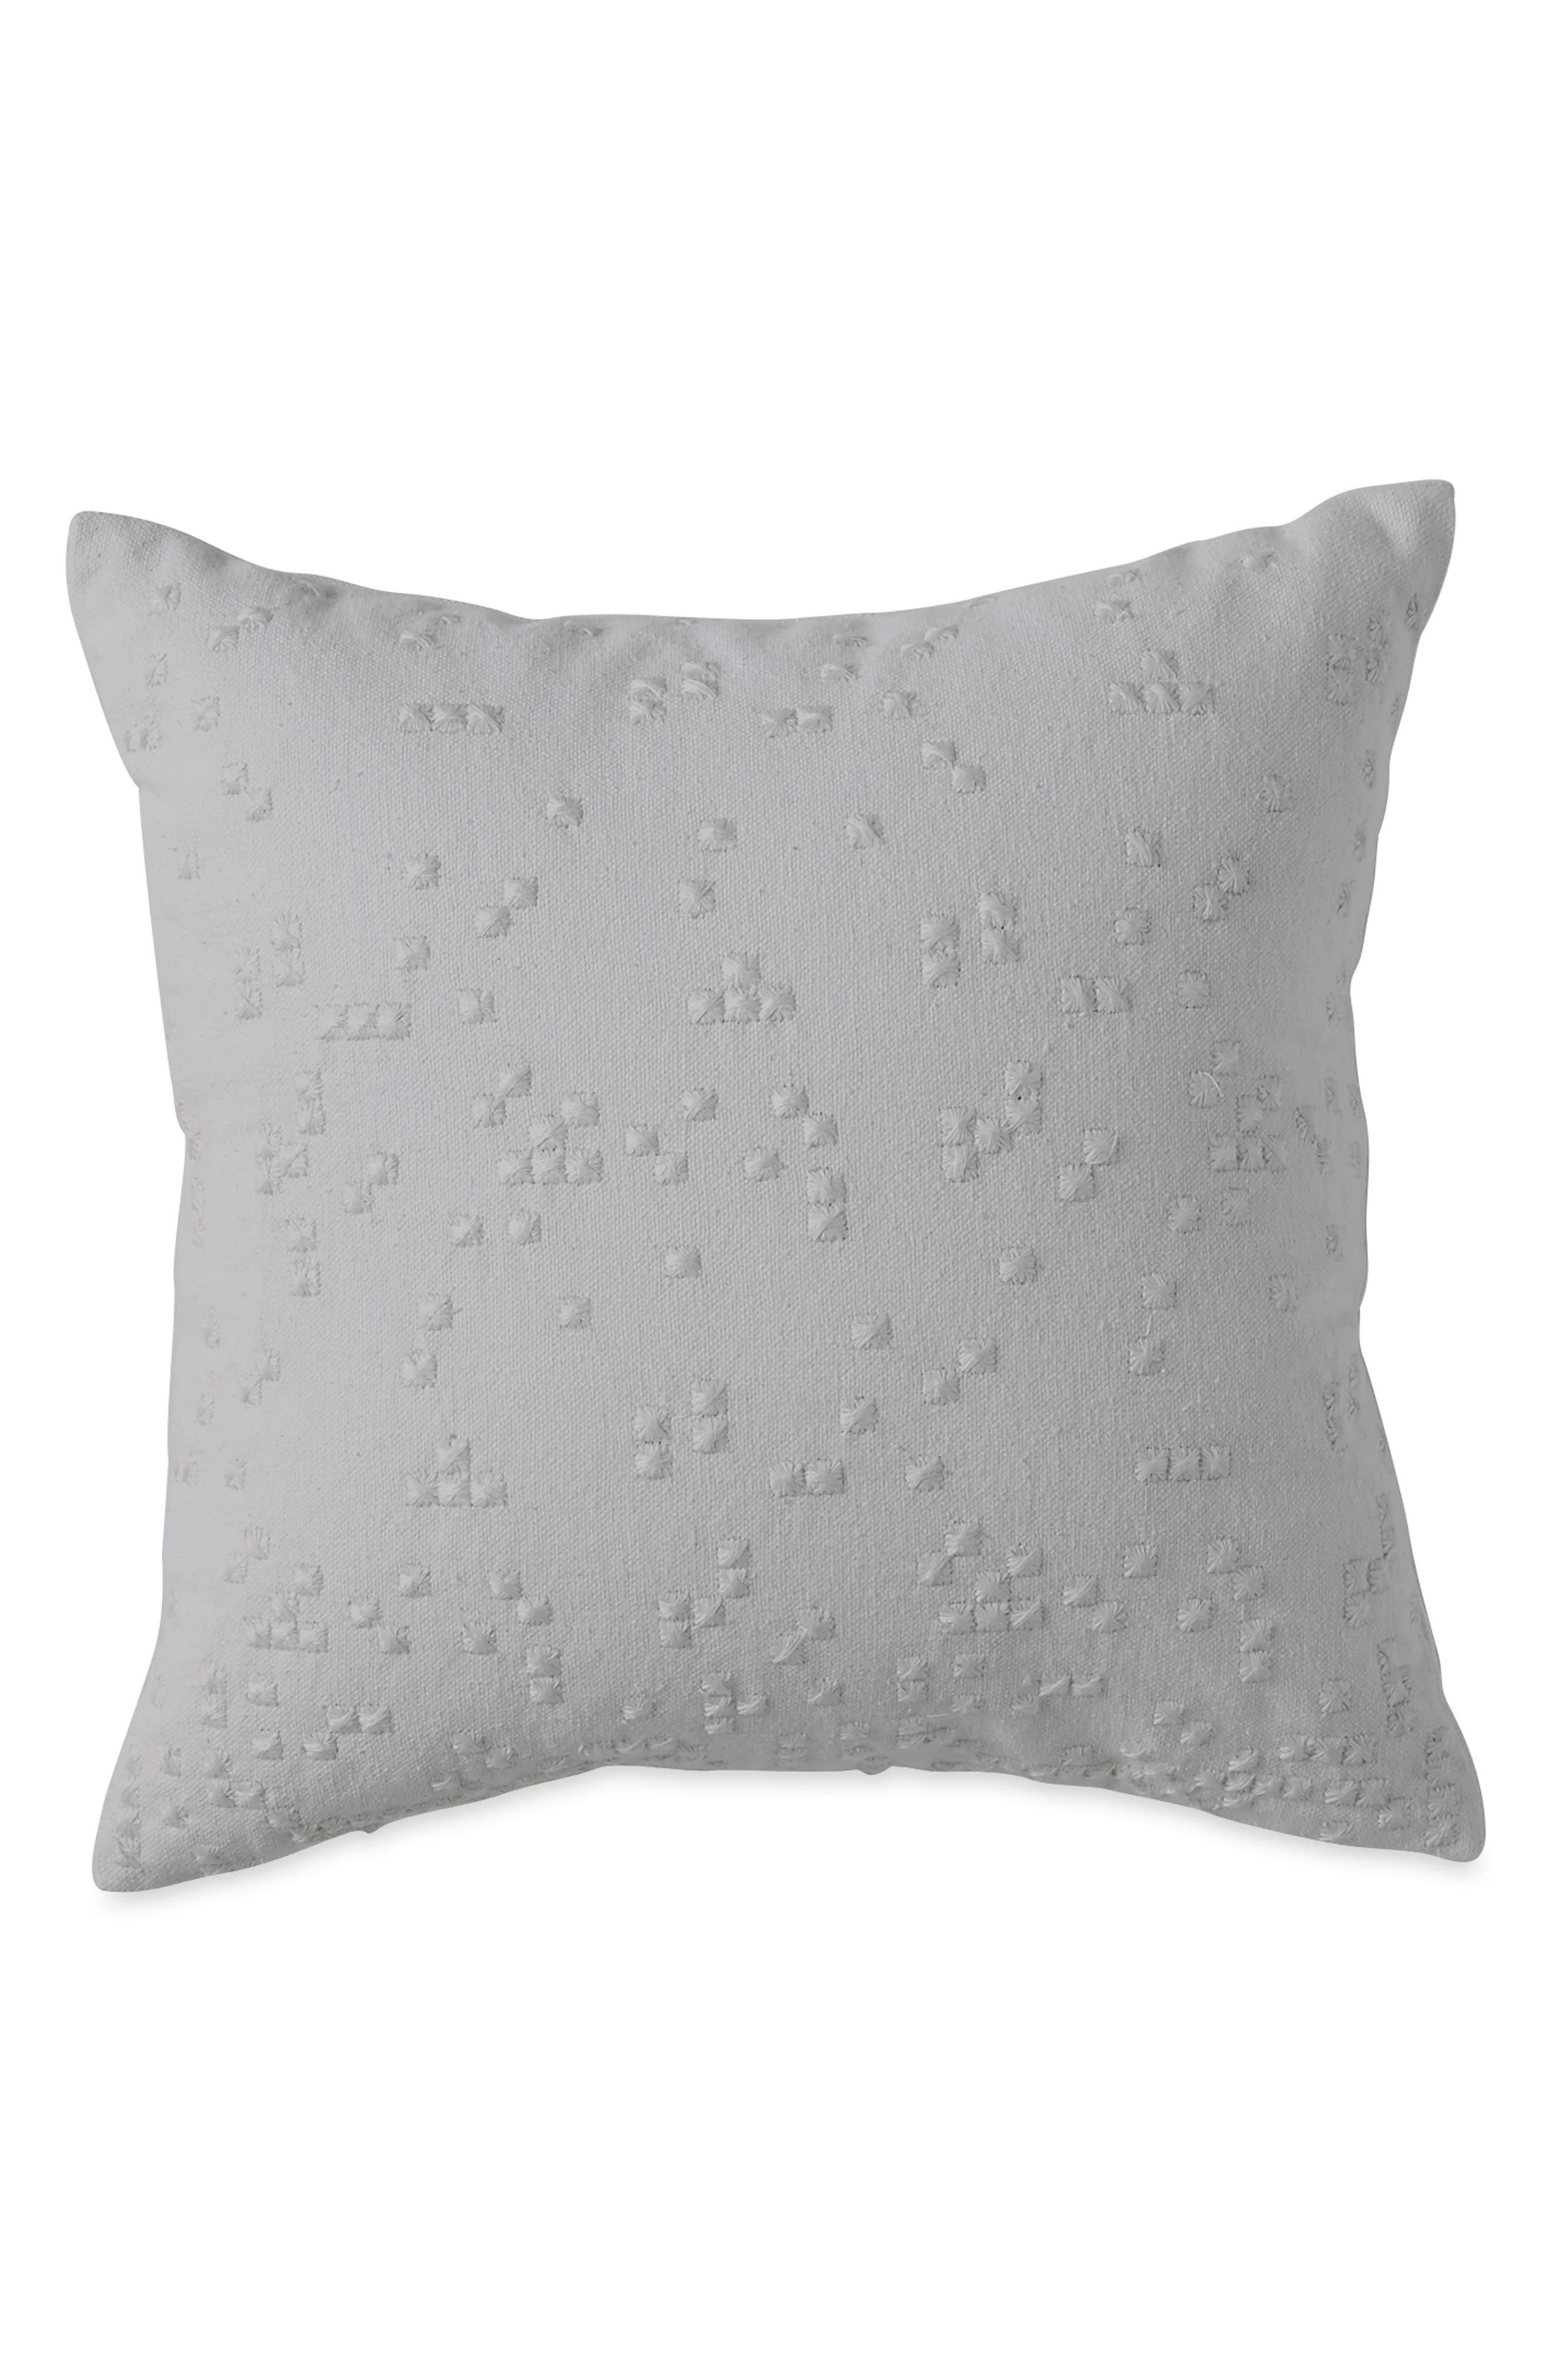 Main Image - DKNY Embroidered Accent Pillow